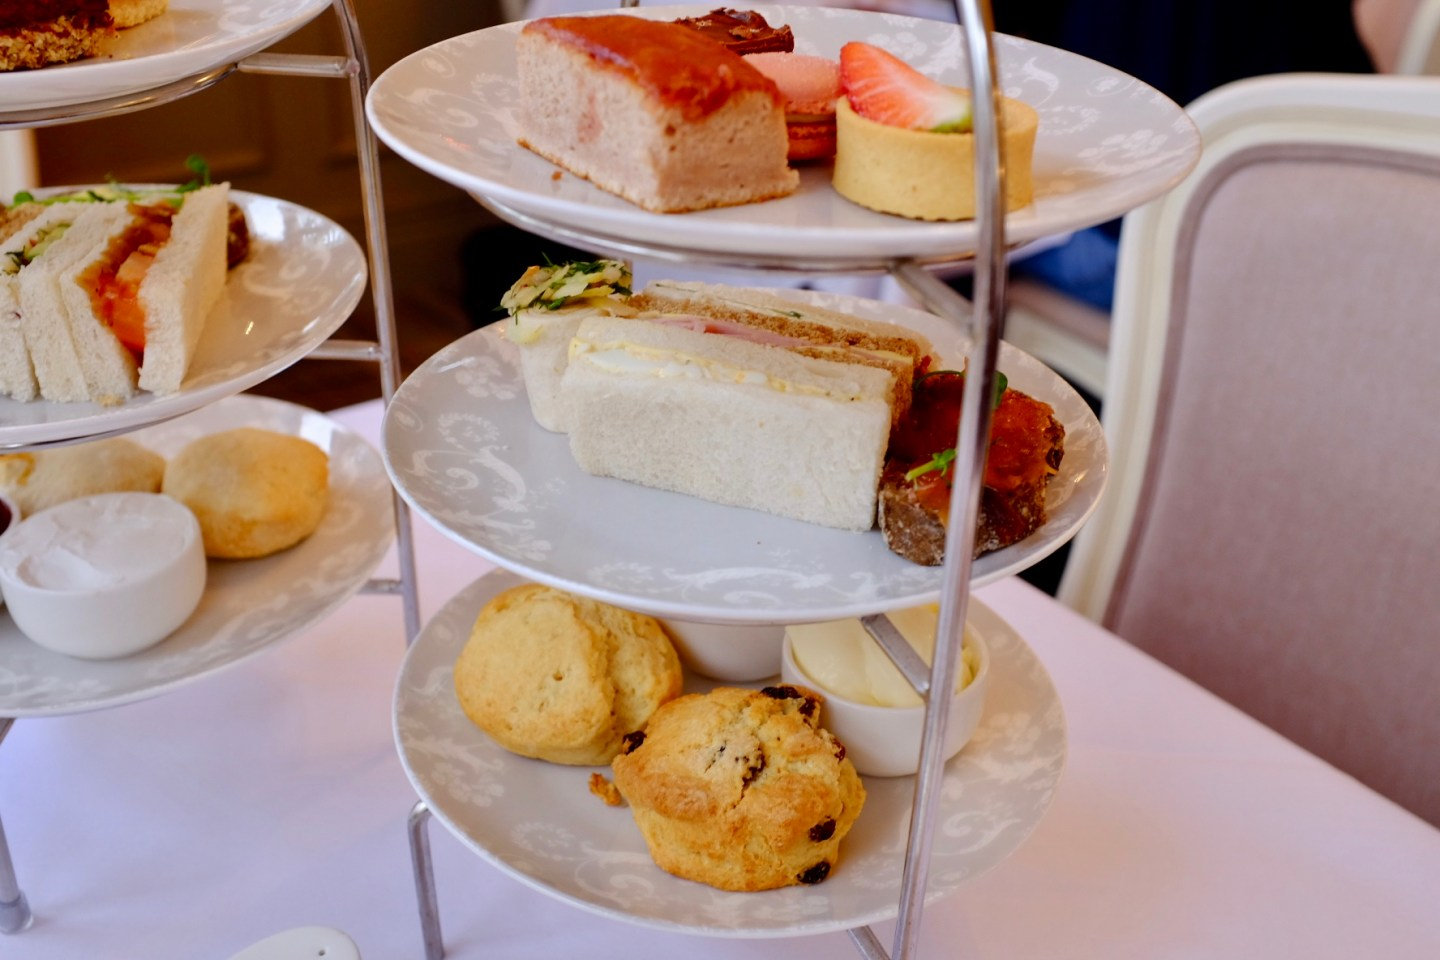 non-vegan afternoon tea at Laura Ashley